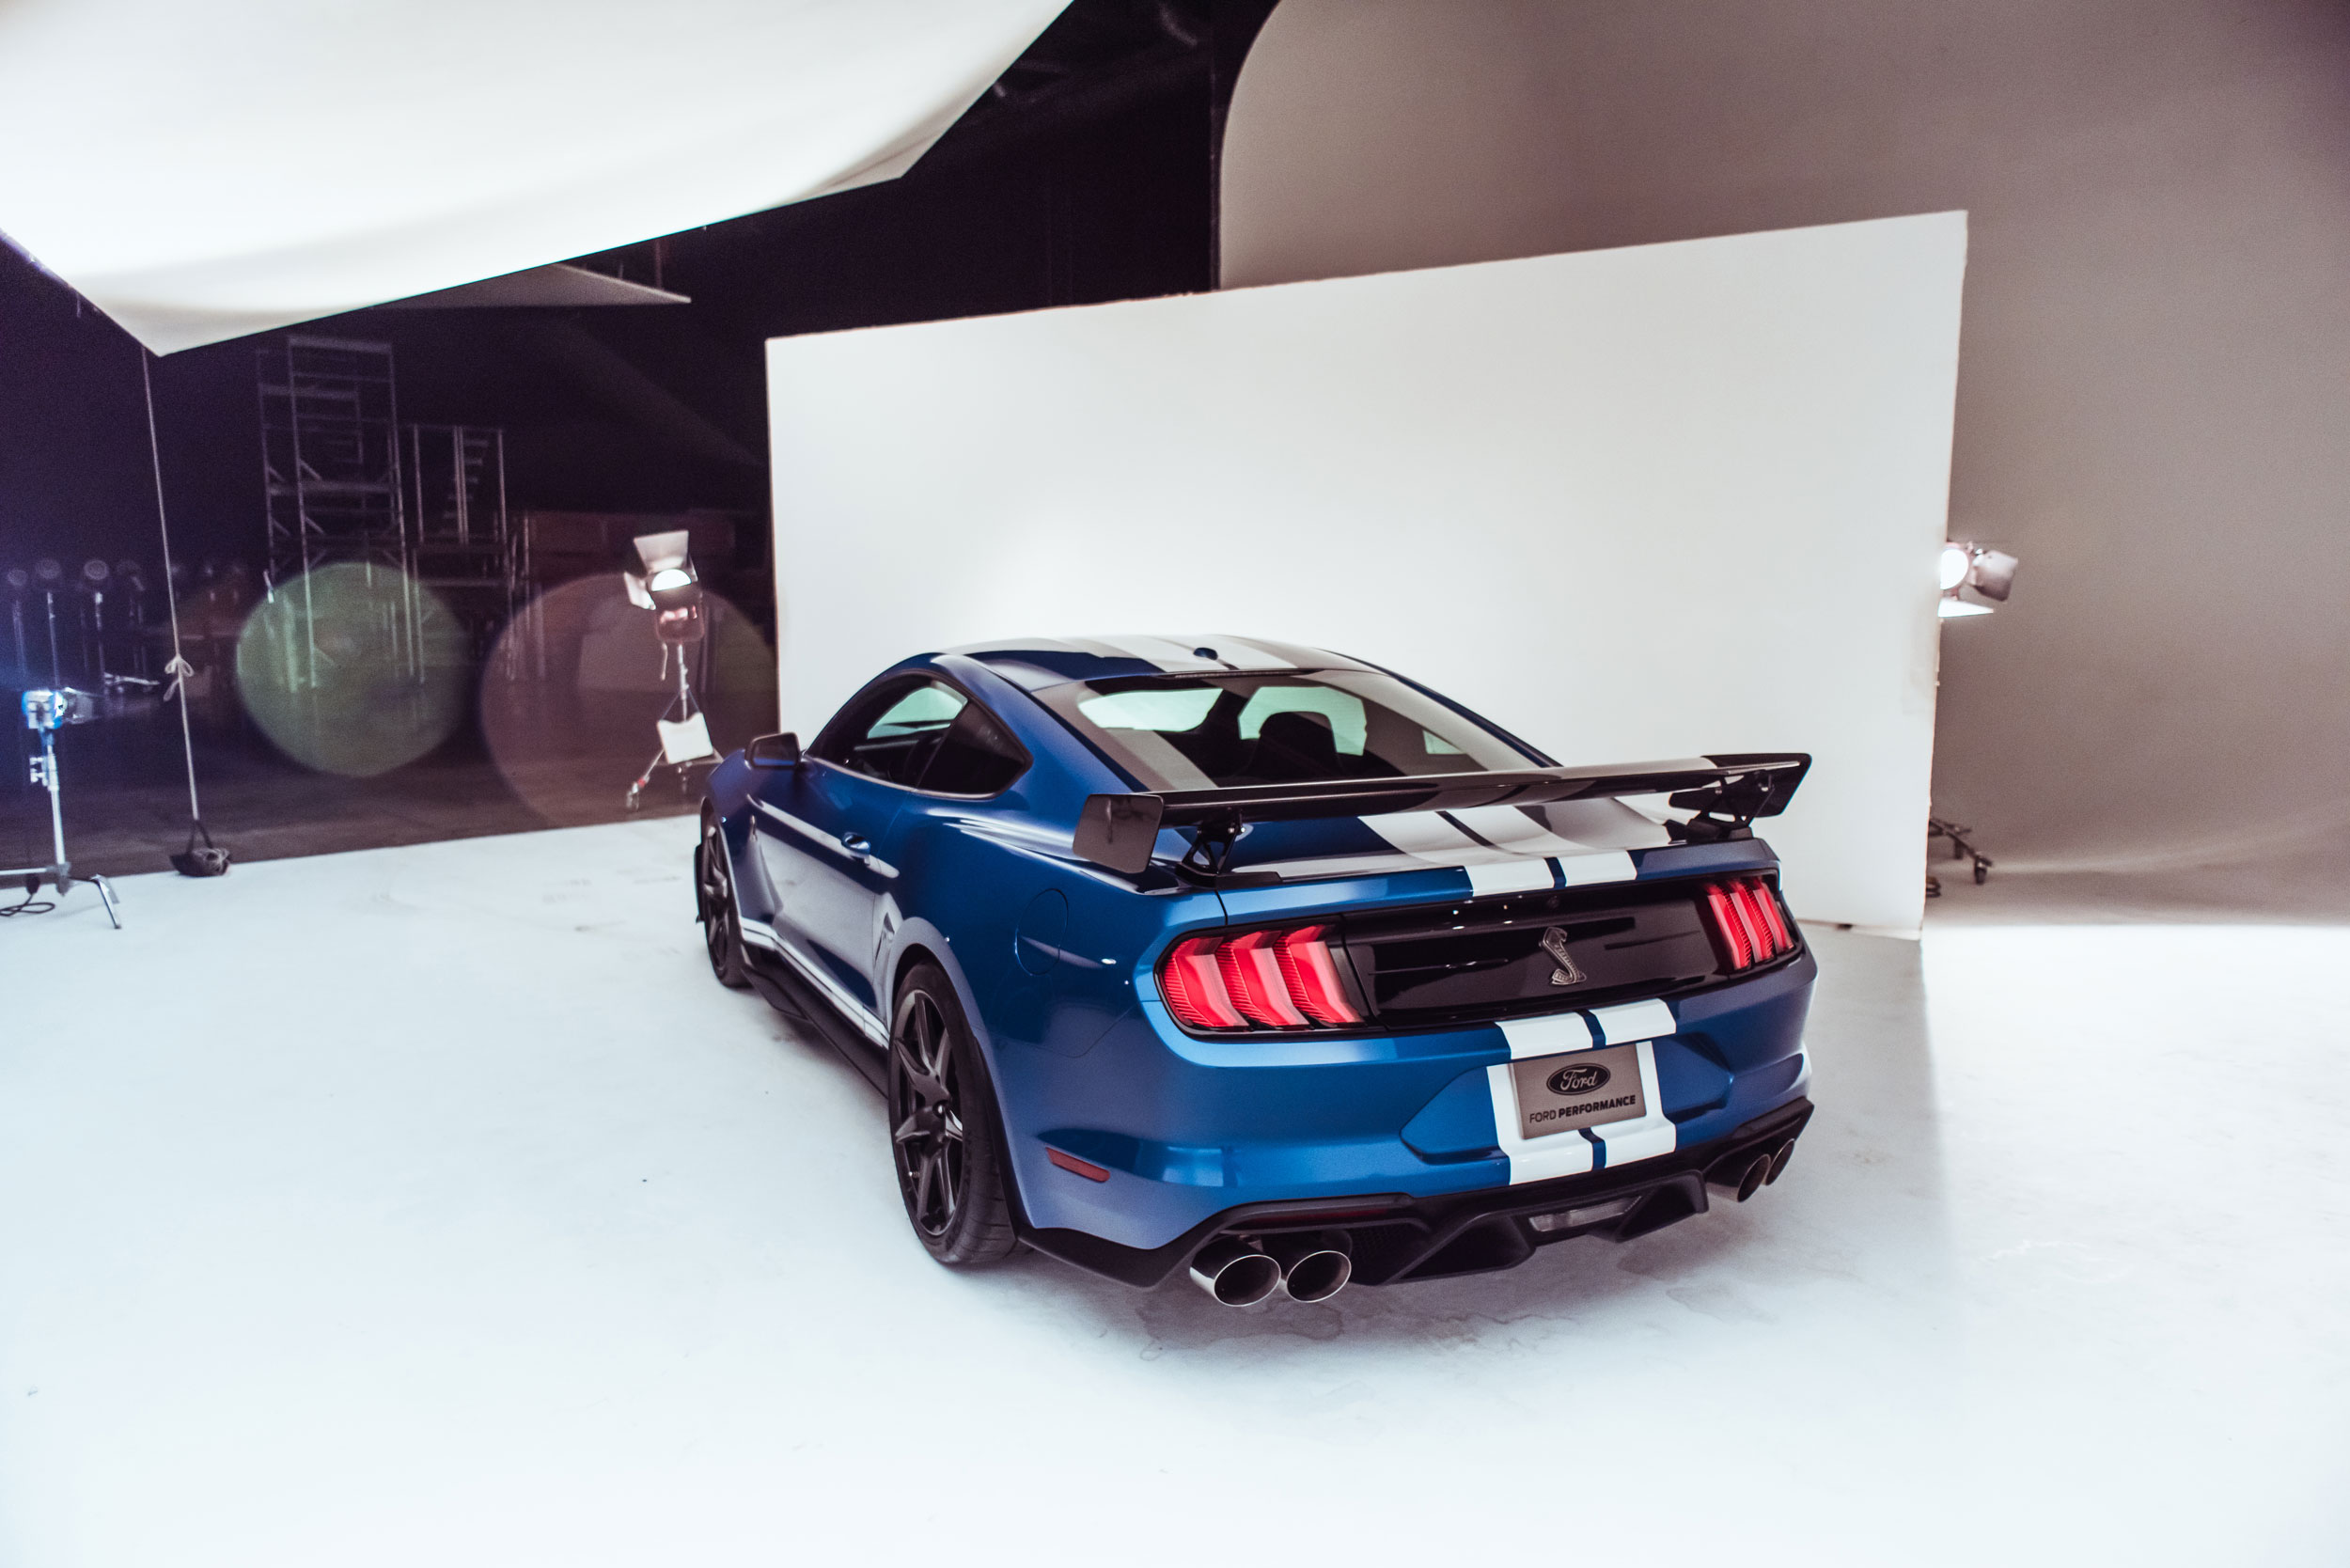 2020 Shelby GT500 rear 3/4 and roofline